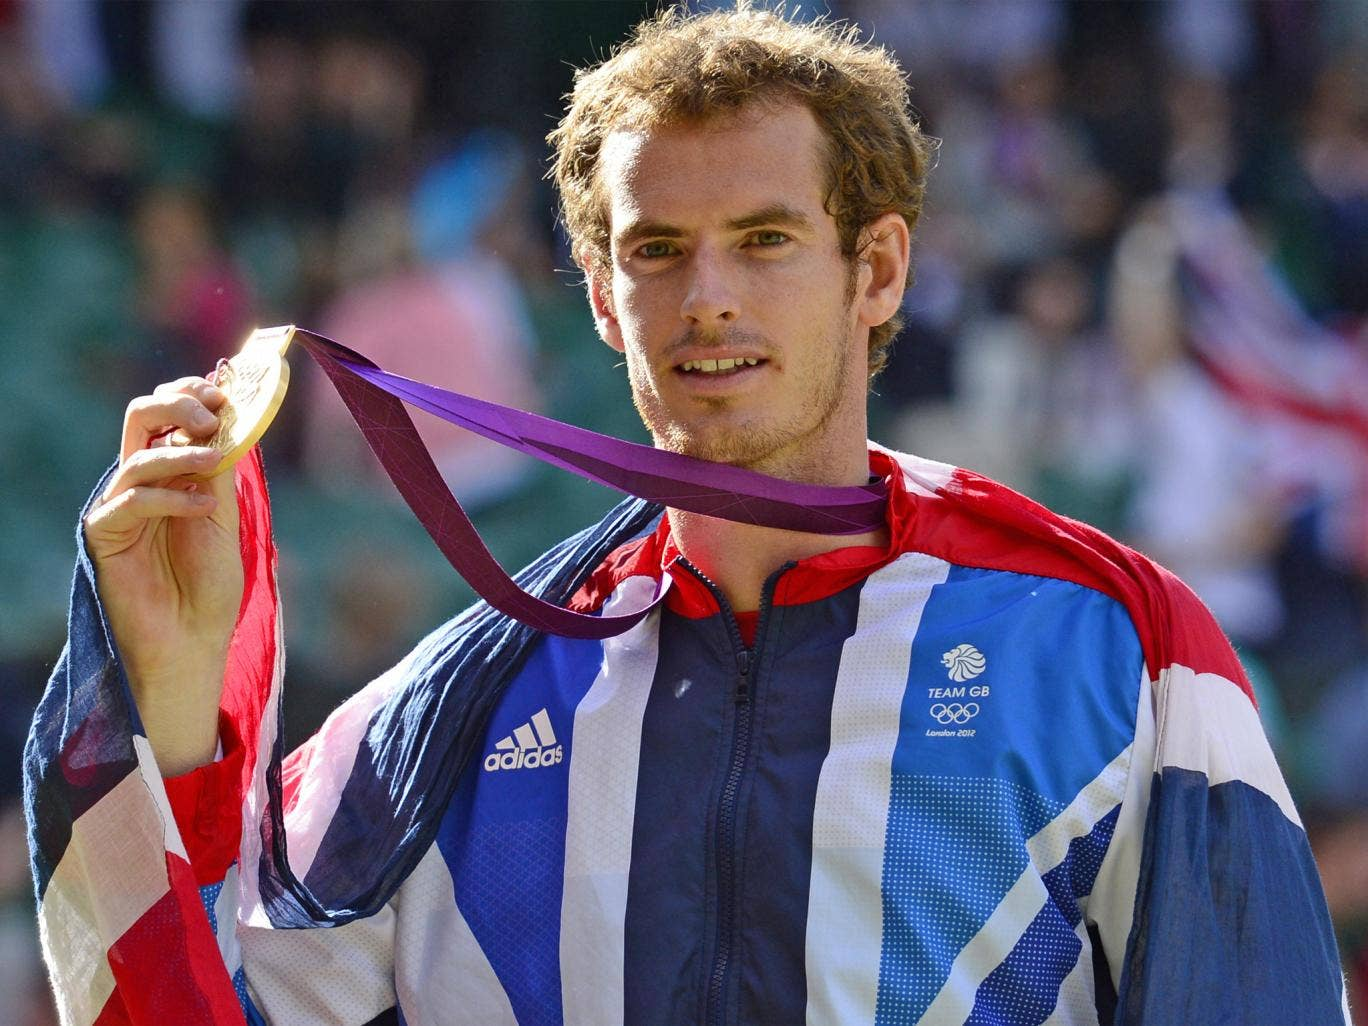 Murray won Olympic gold (pictured) and the US Open last year